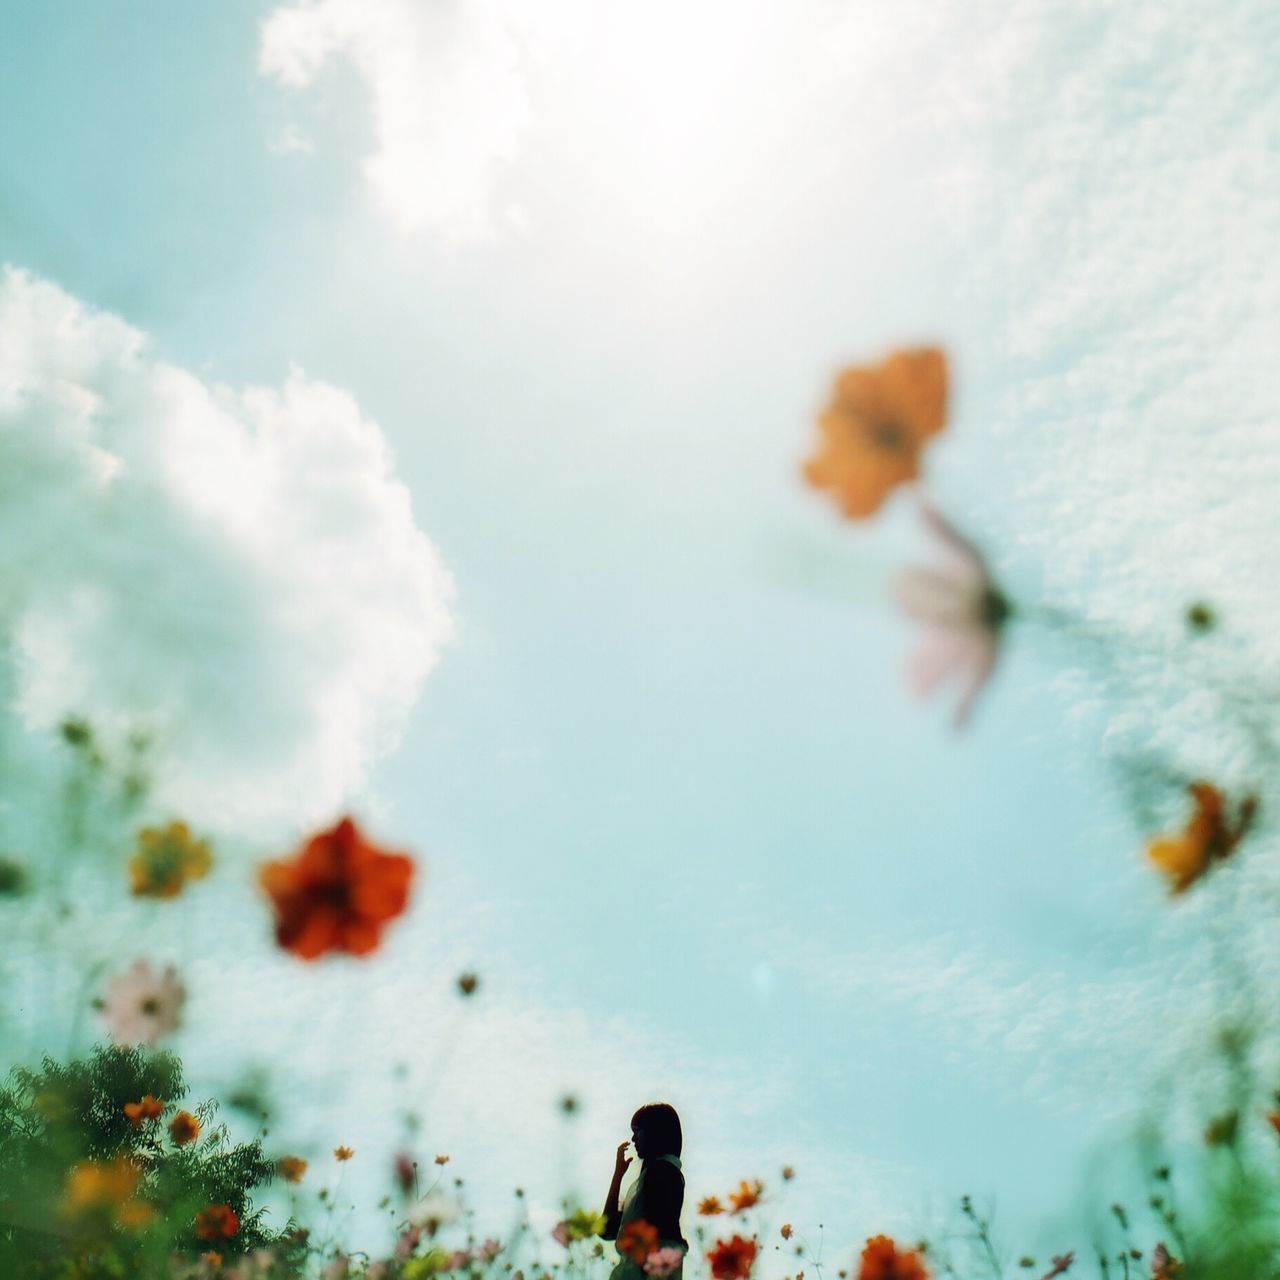 Low angle view of woman on field against cloudy sky